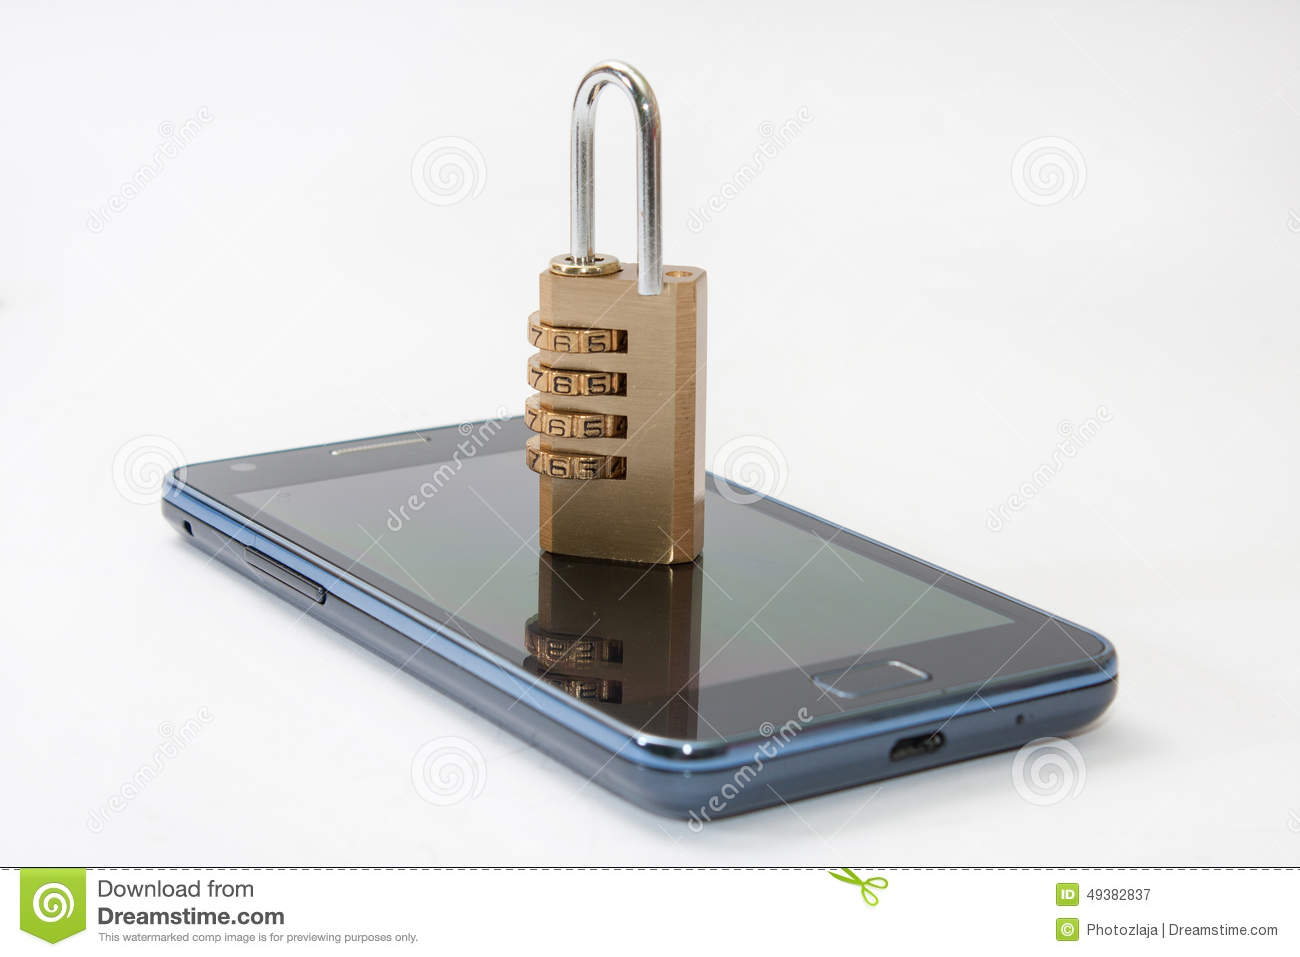 how to tell if phone is locked